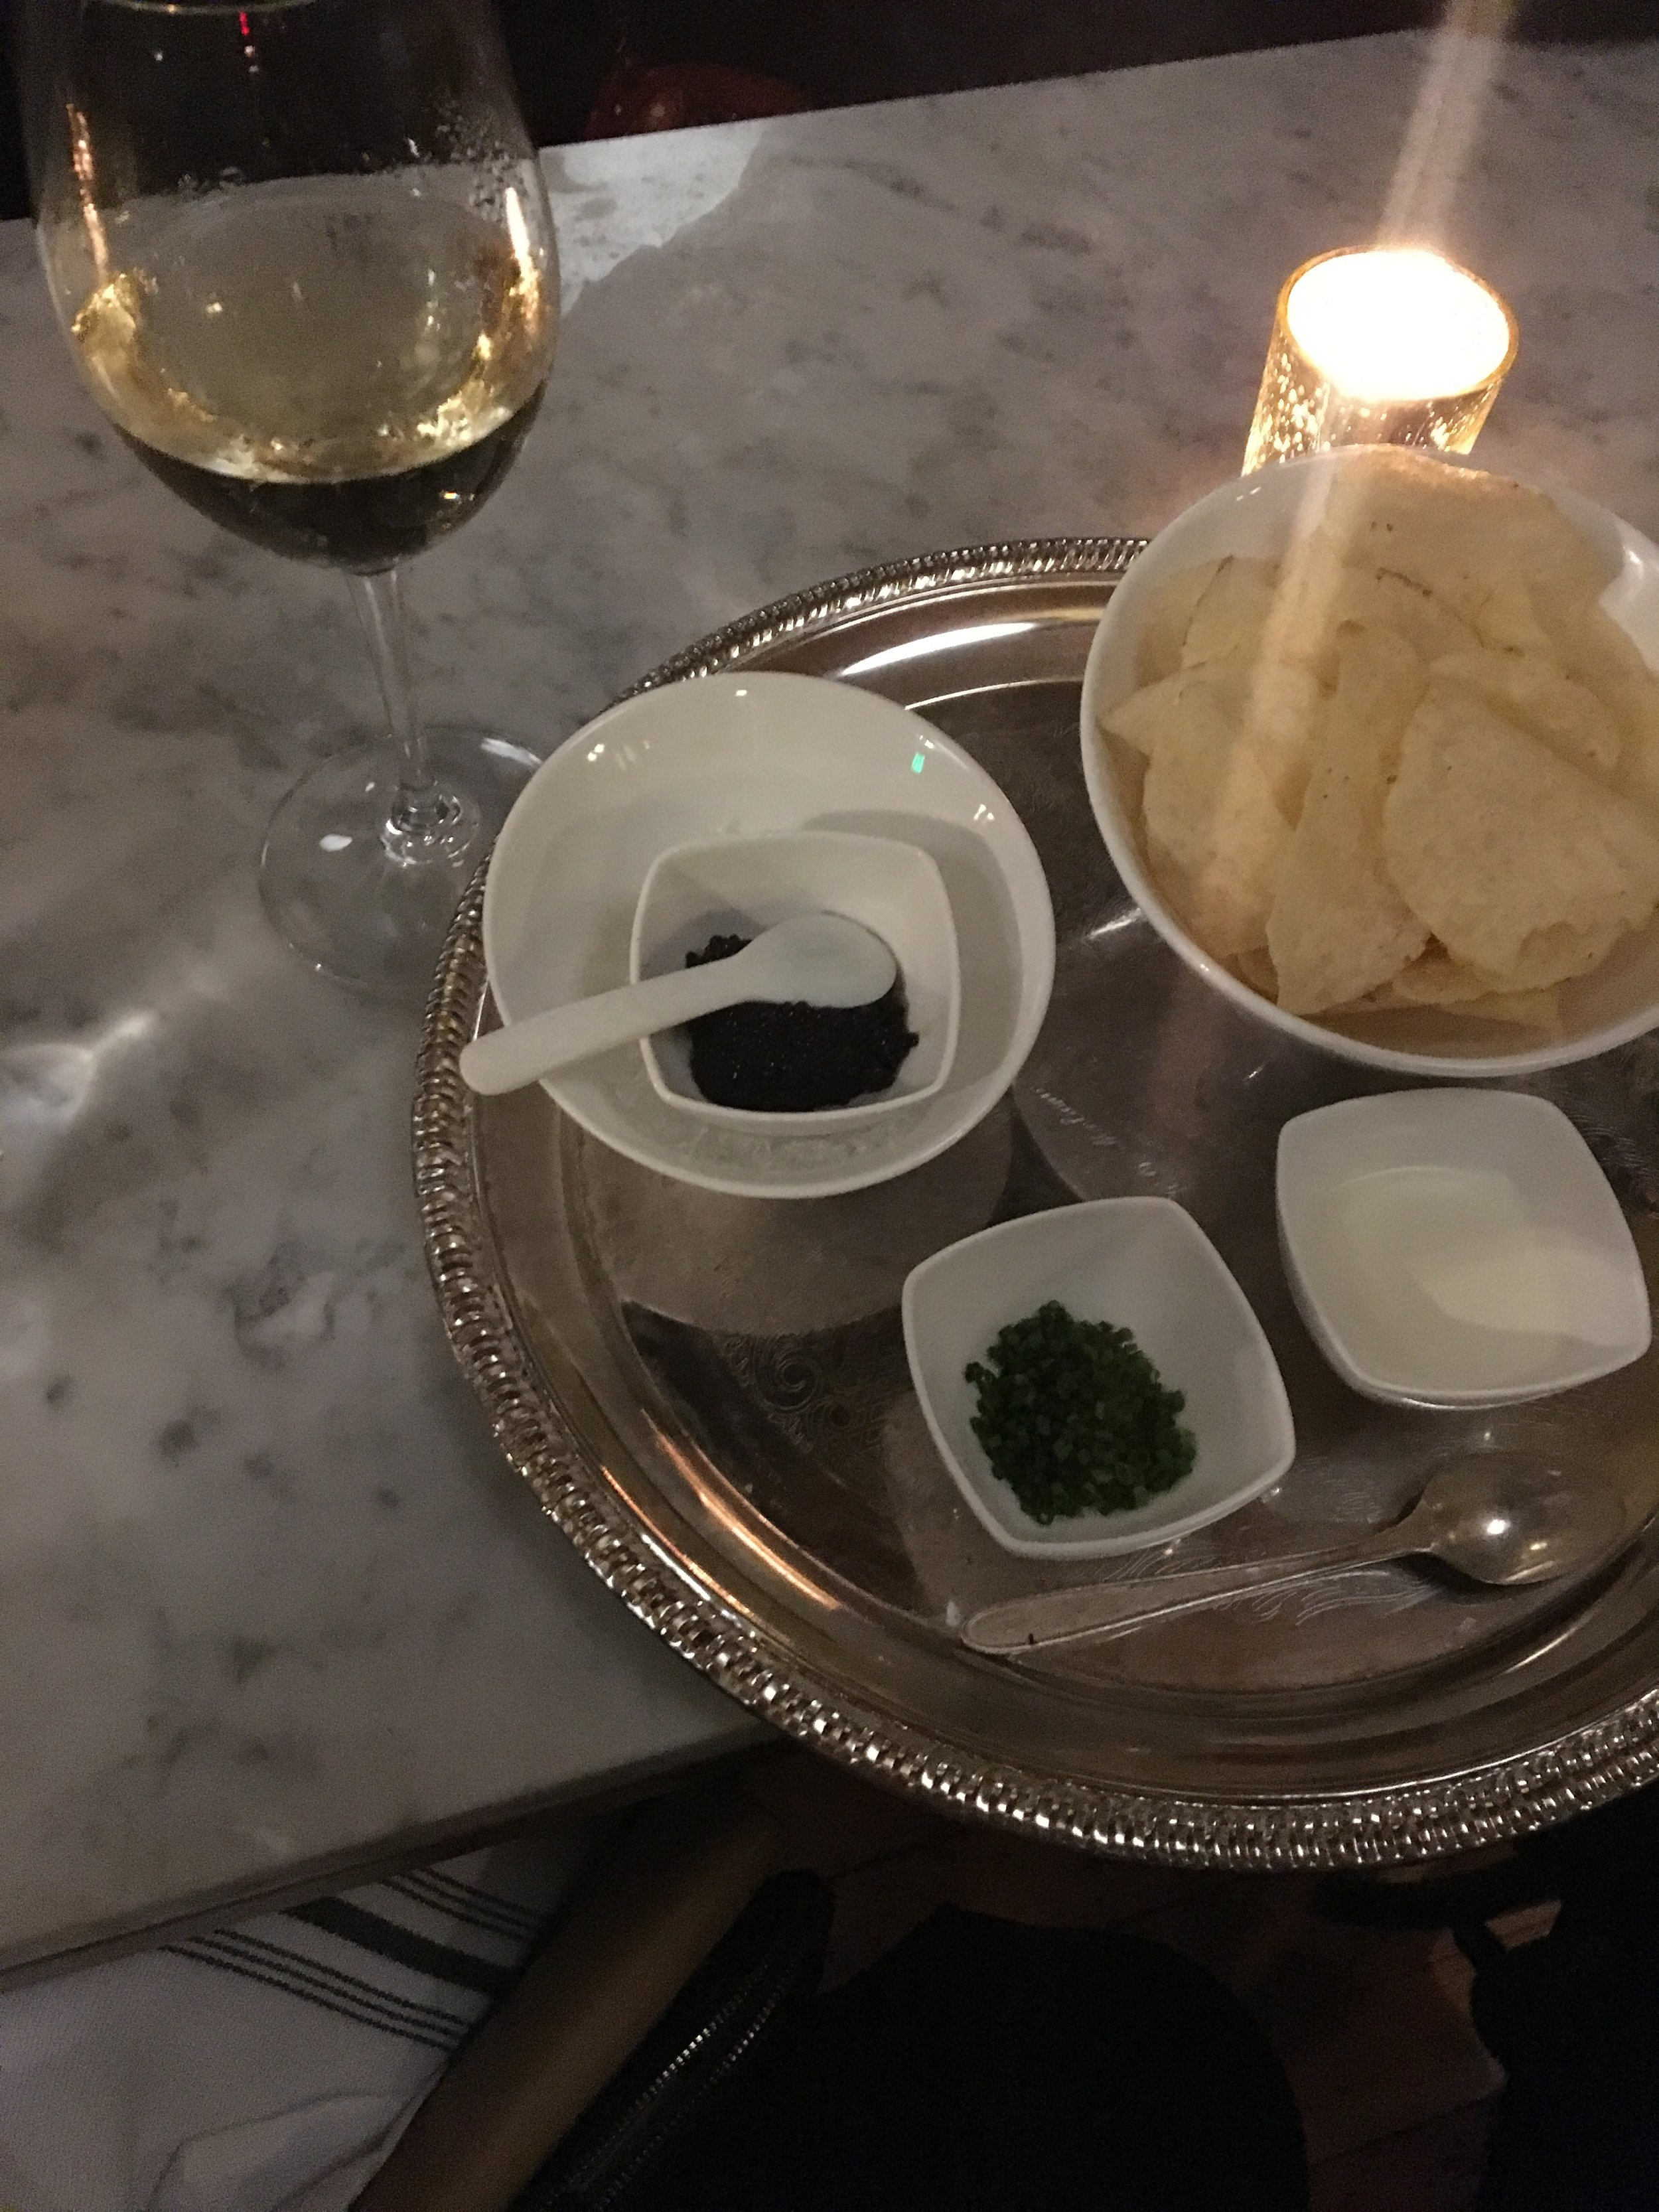 My first caviar experience - at The Riddler champagne bar in San Fran